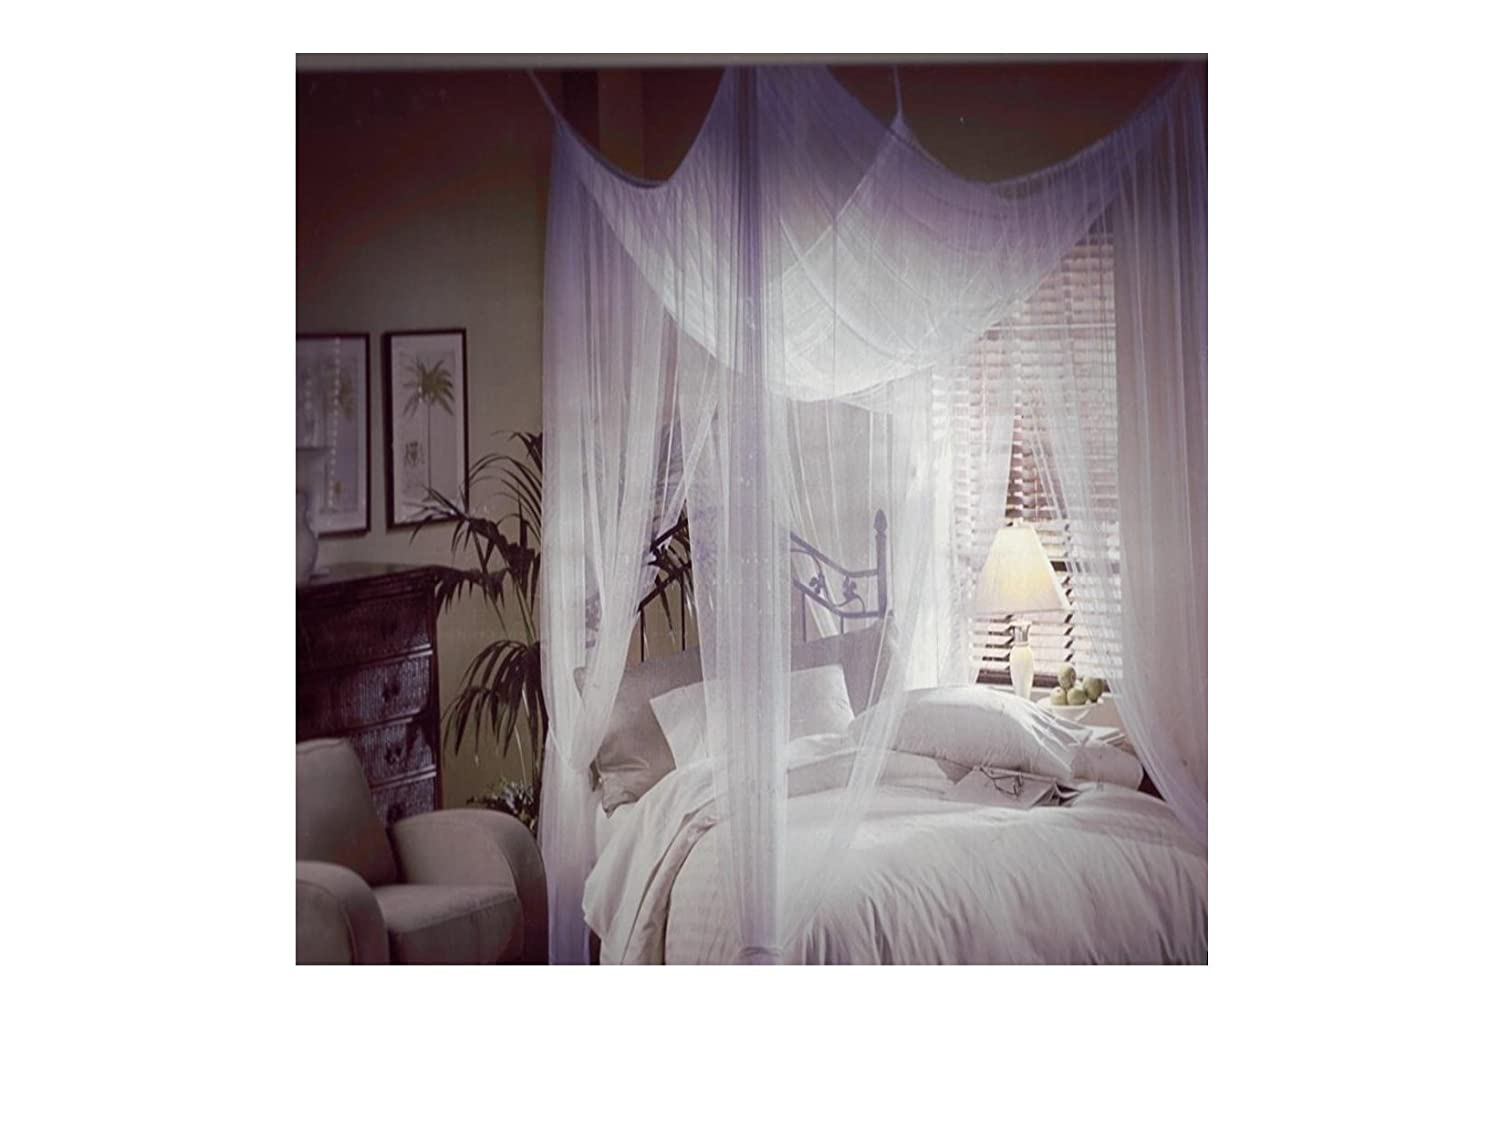 sc 1 st  Amazon.com & Amazon.com: Mombasa Majesty Classic Bed Canopy White: Home u0026 Kitchen